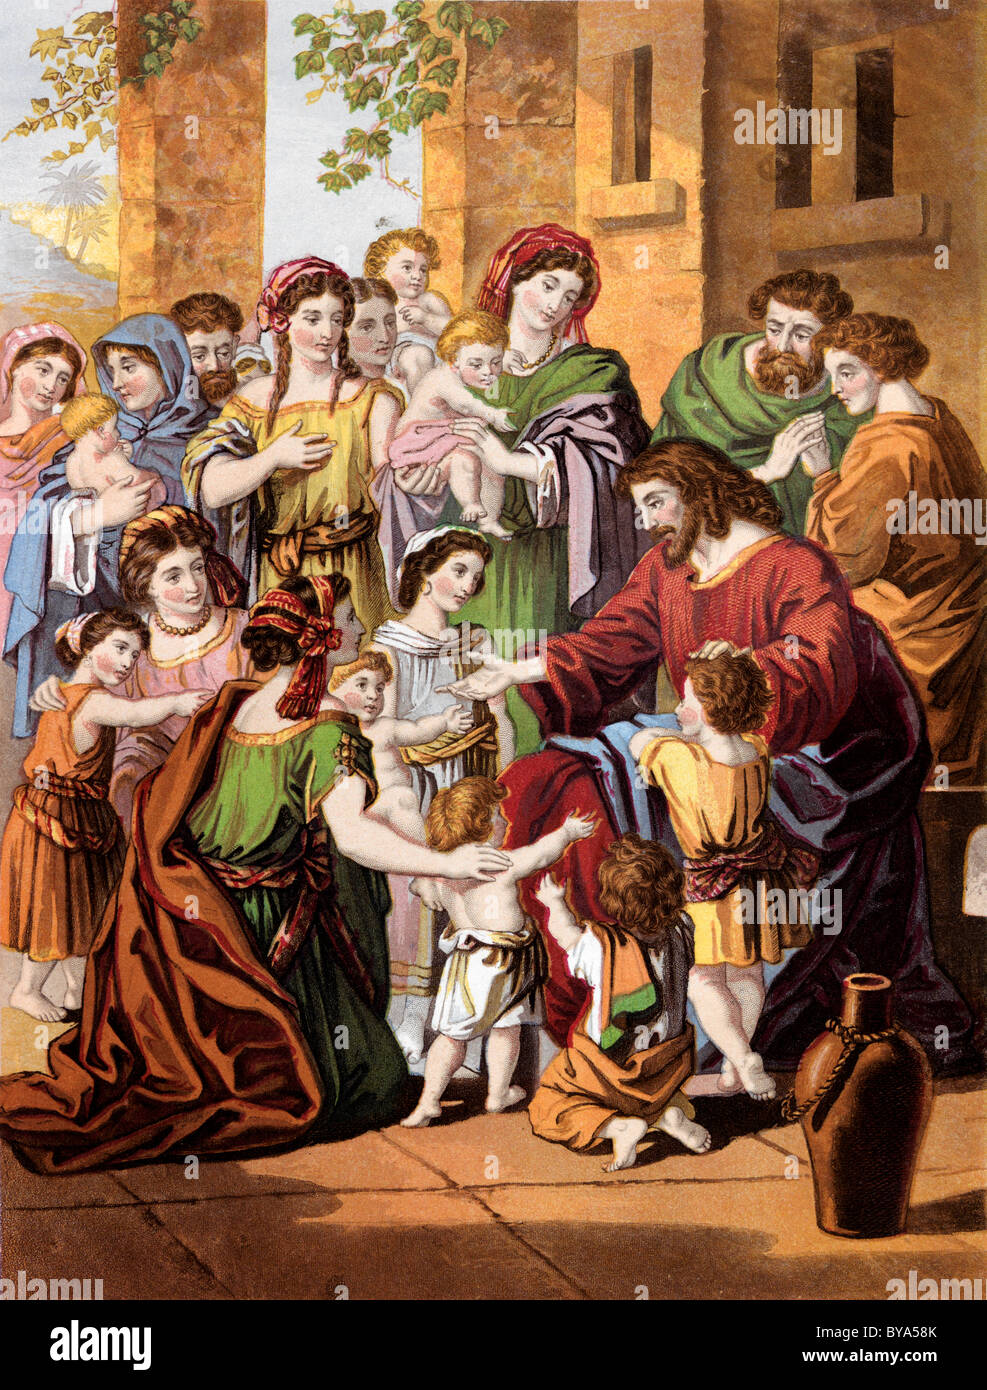 bible stories illustration of jesus christ blessing the little